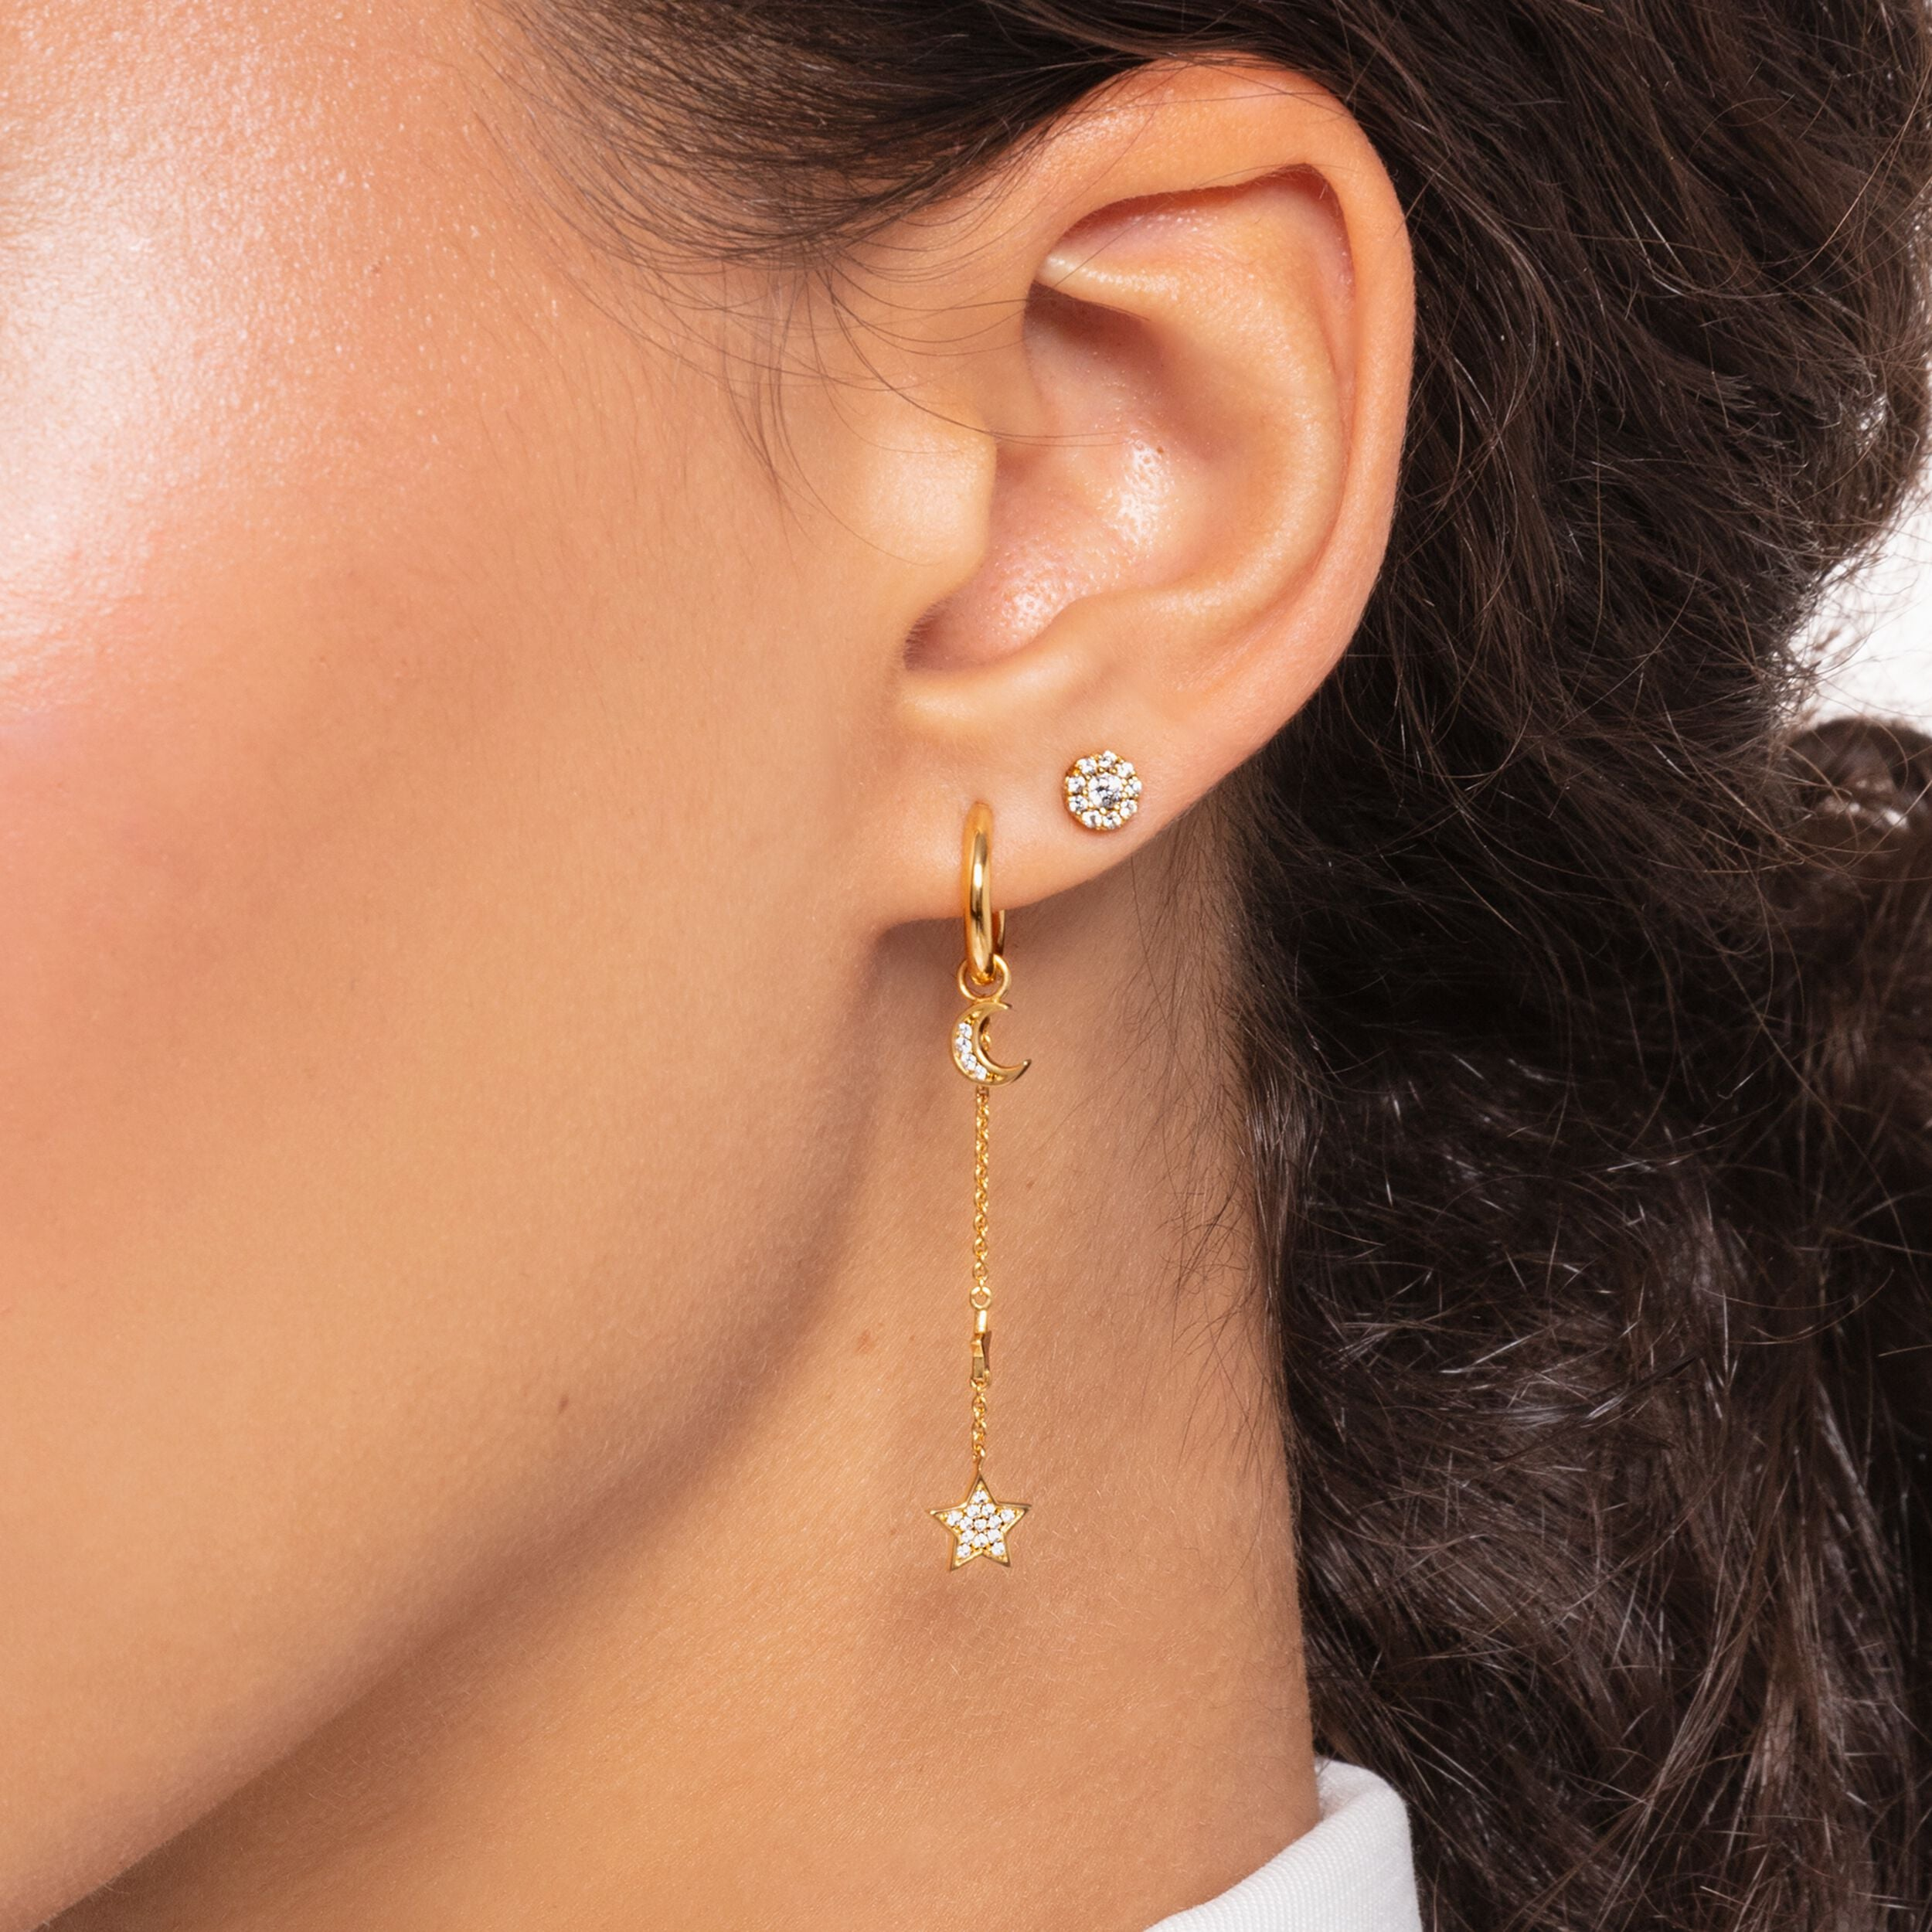 Thomas Sabo, Sterling Silver, Yellow Gold Plated, Cubic Zirconia, Multi Stone, Moon, Single Earring Pendant, Ottawa